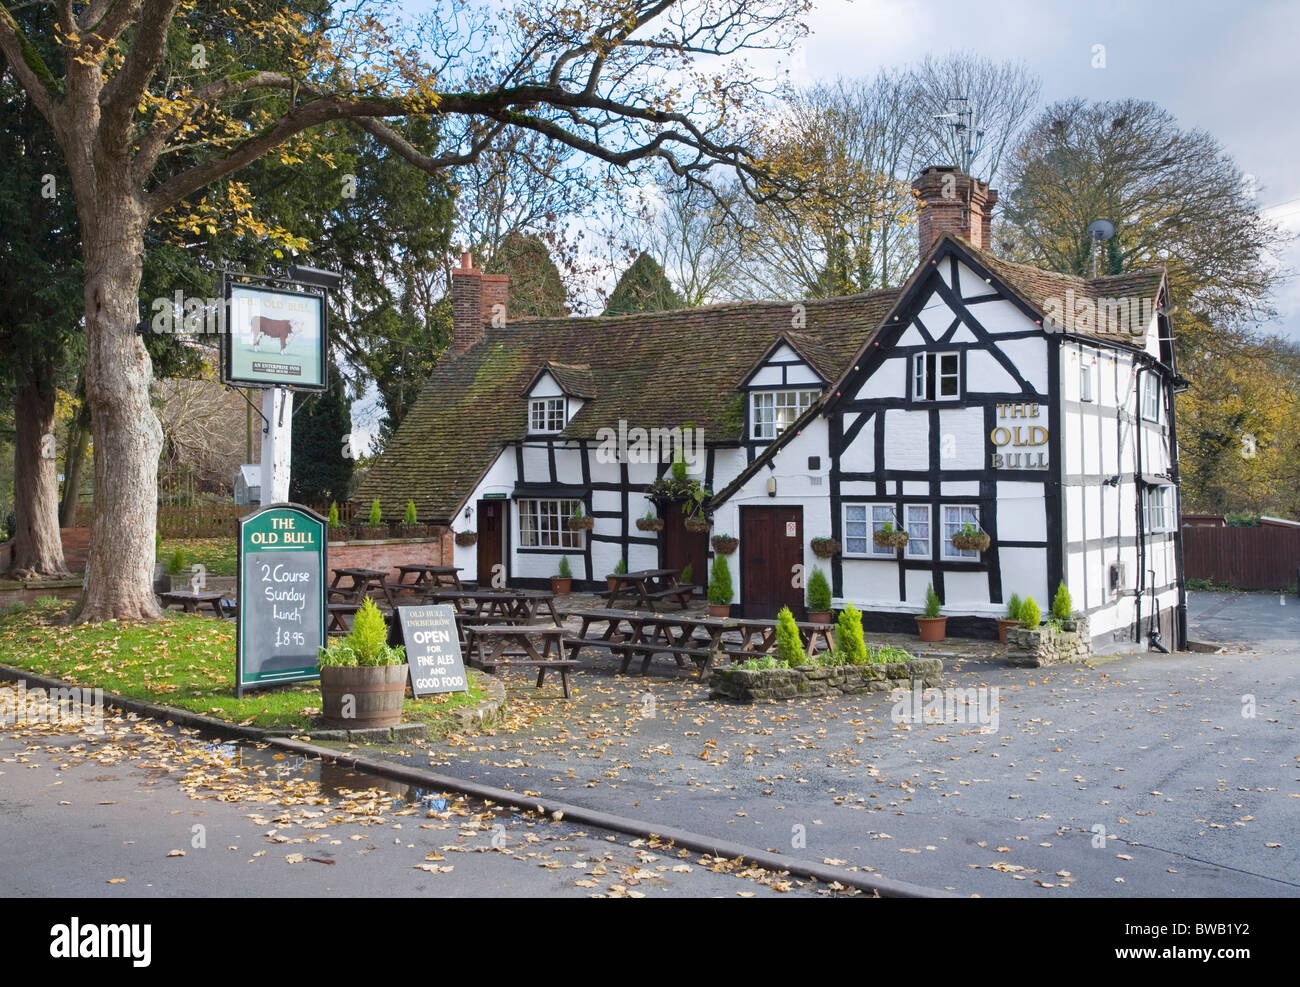 The Old Bull Inn at Inkberrow. Worcestershire. England. UK. - Stock Image